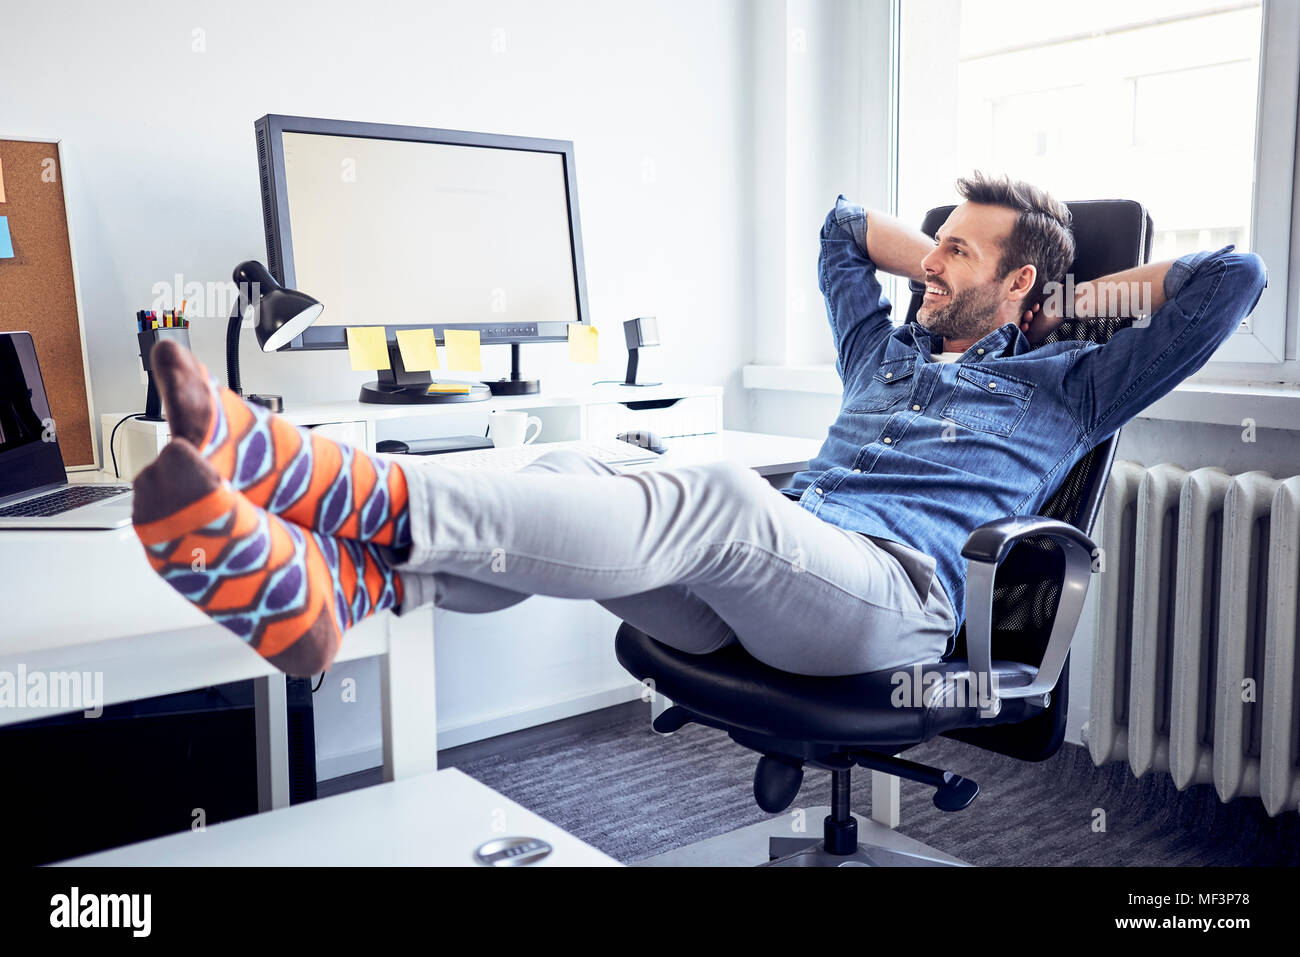 Relaxed man sitting at desk in office looking at computer screen - Stock Image